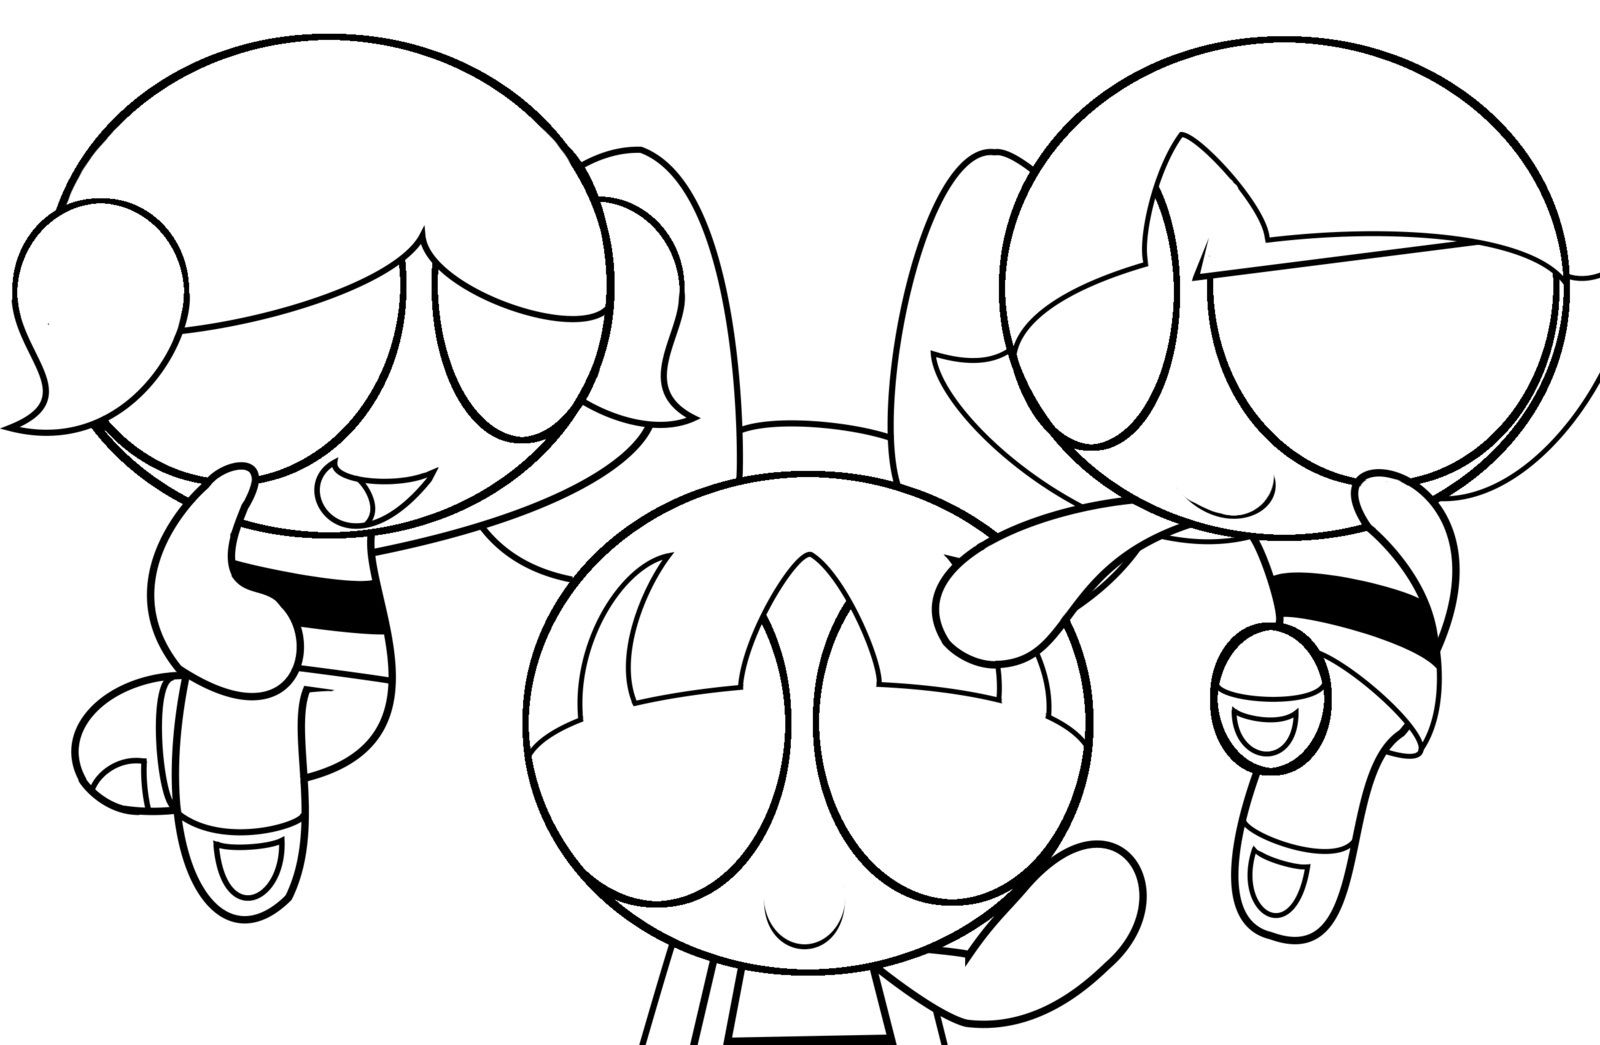 http://colorings.co/powerpuff-girls-coloring-pages/ | Colorings ...